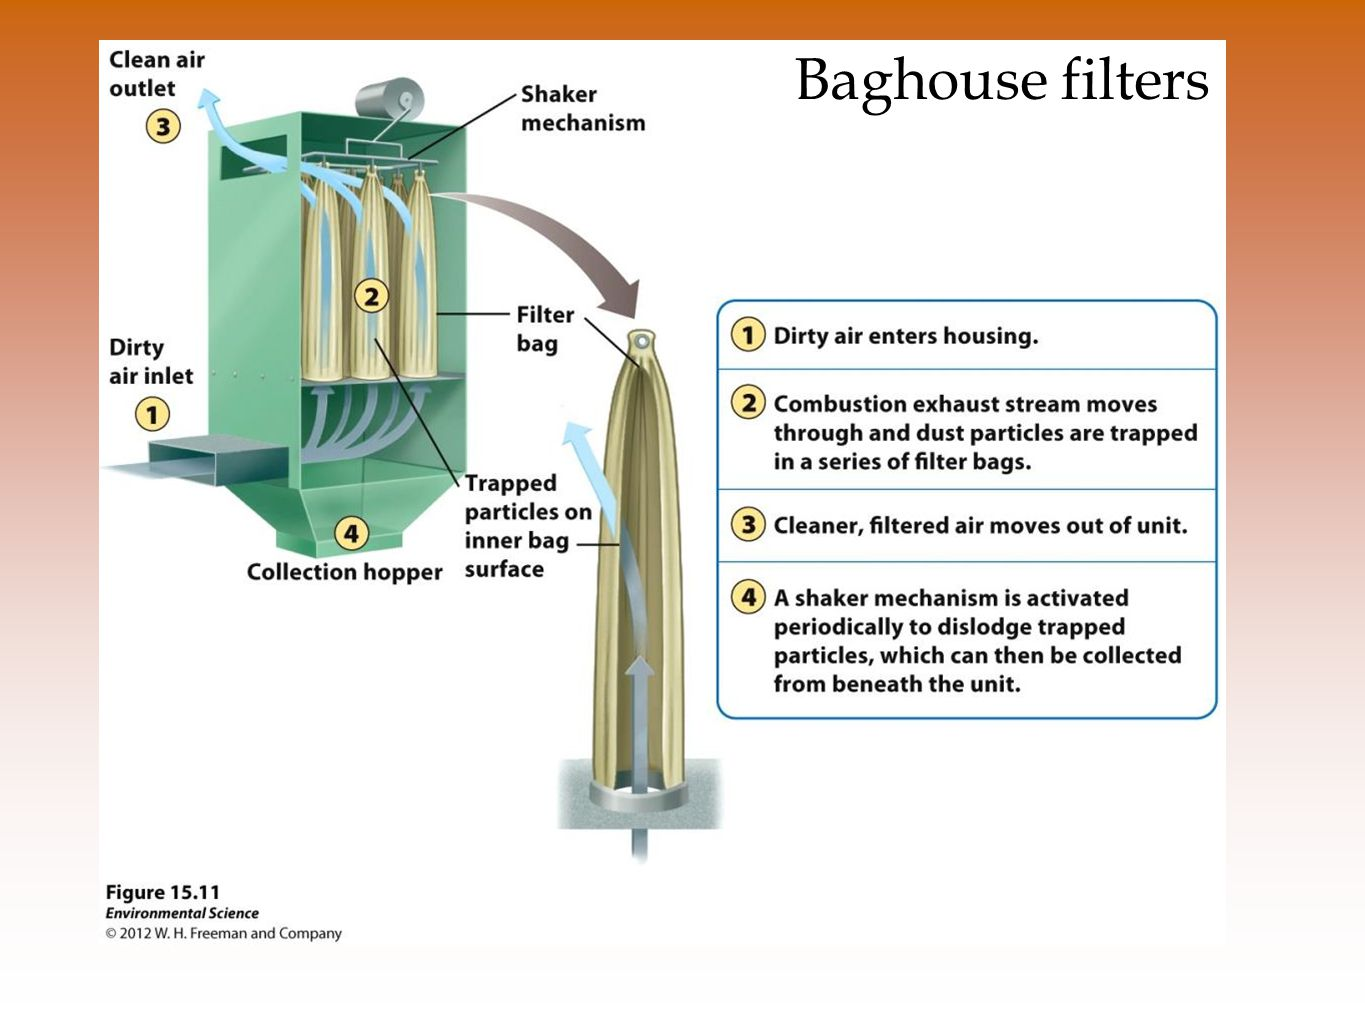 Baghouse filters